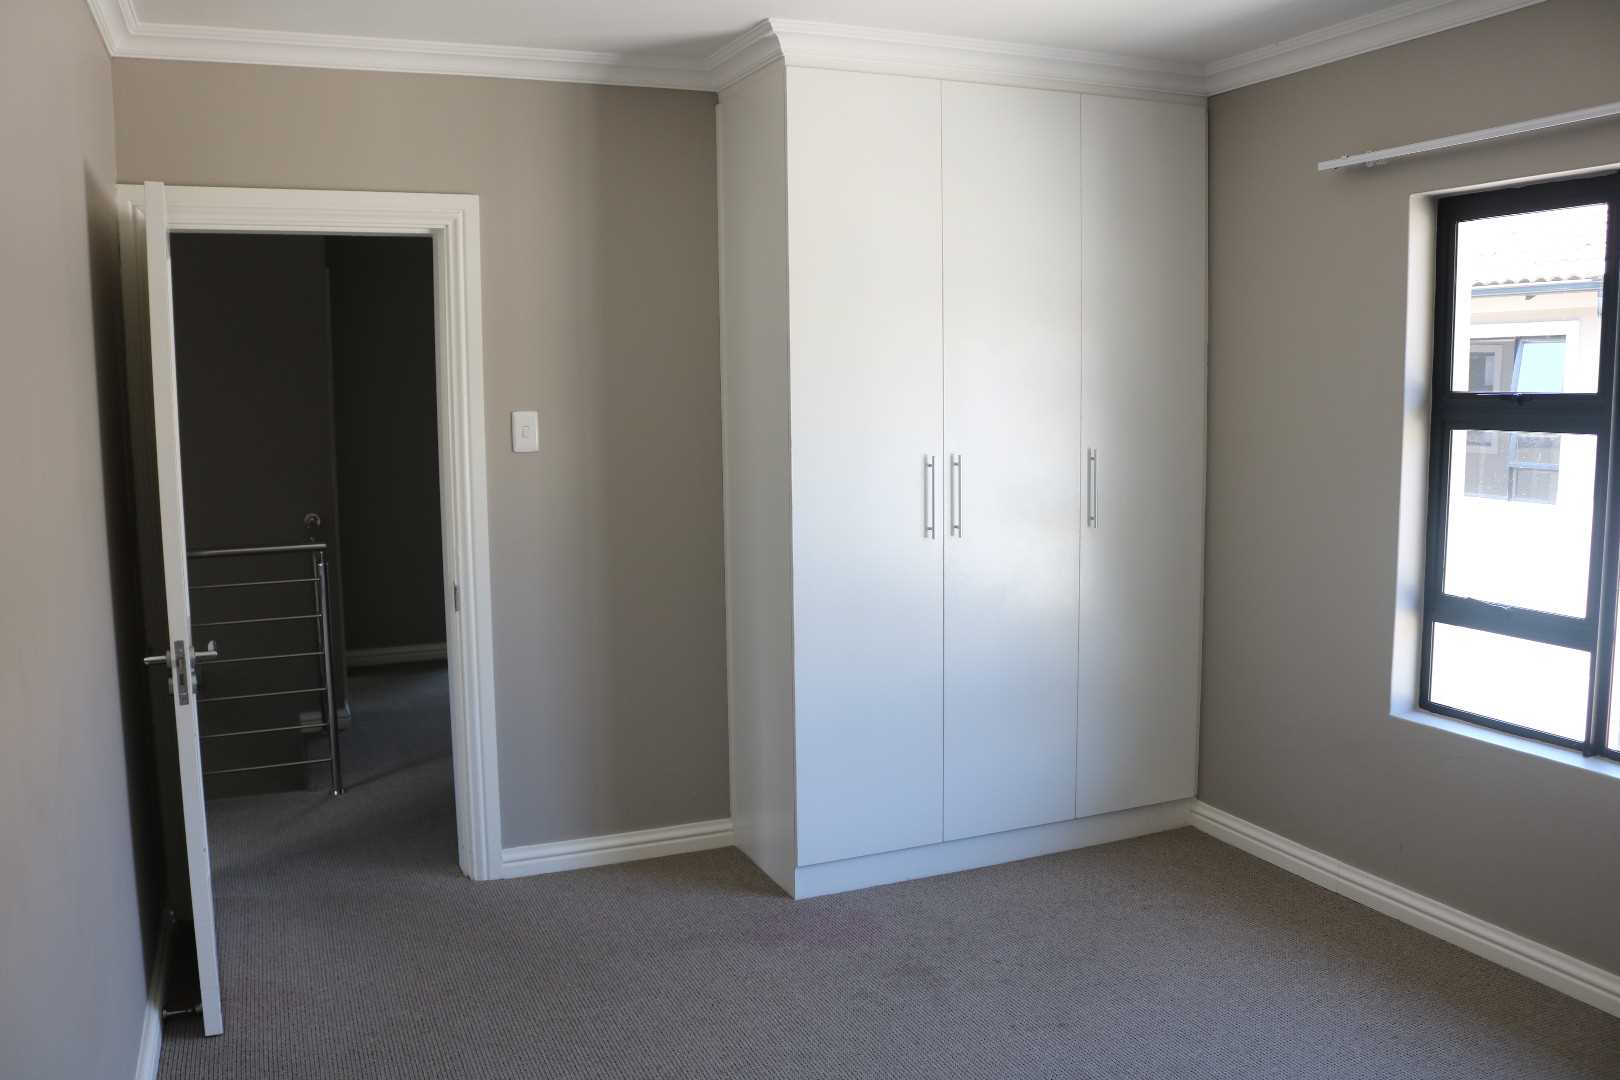 2nd bedroom with bic and entrance view